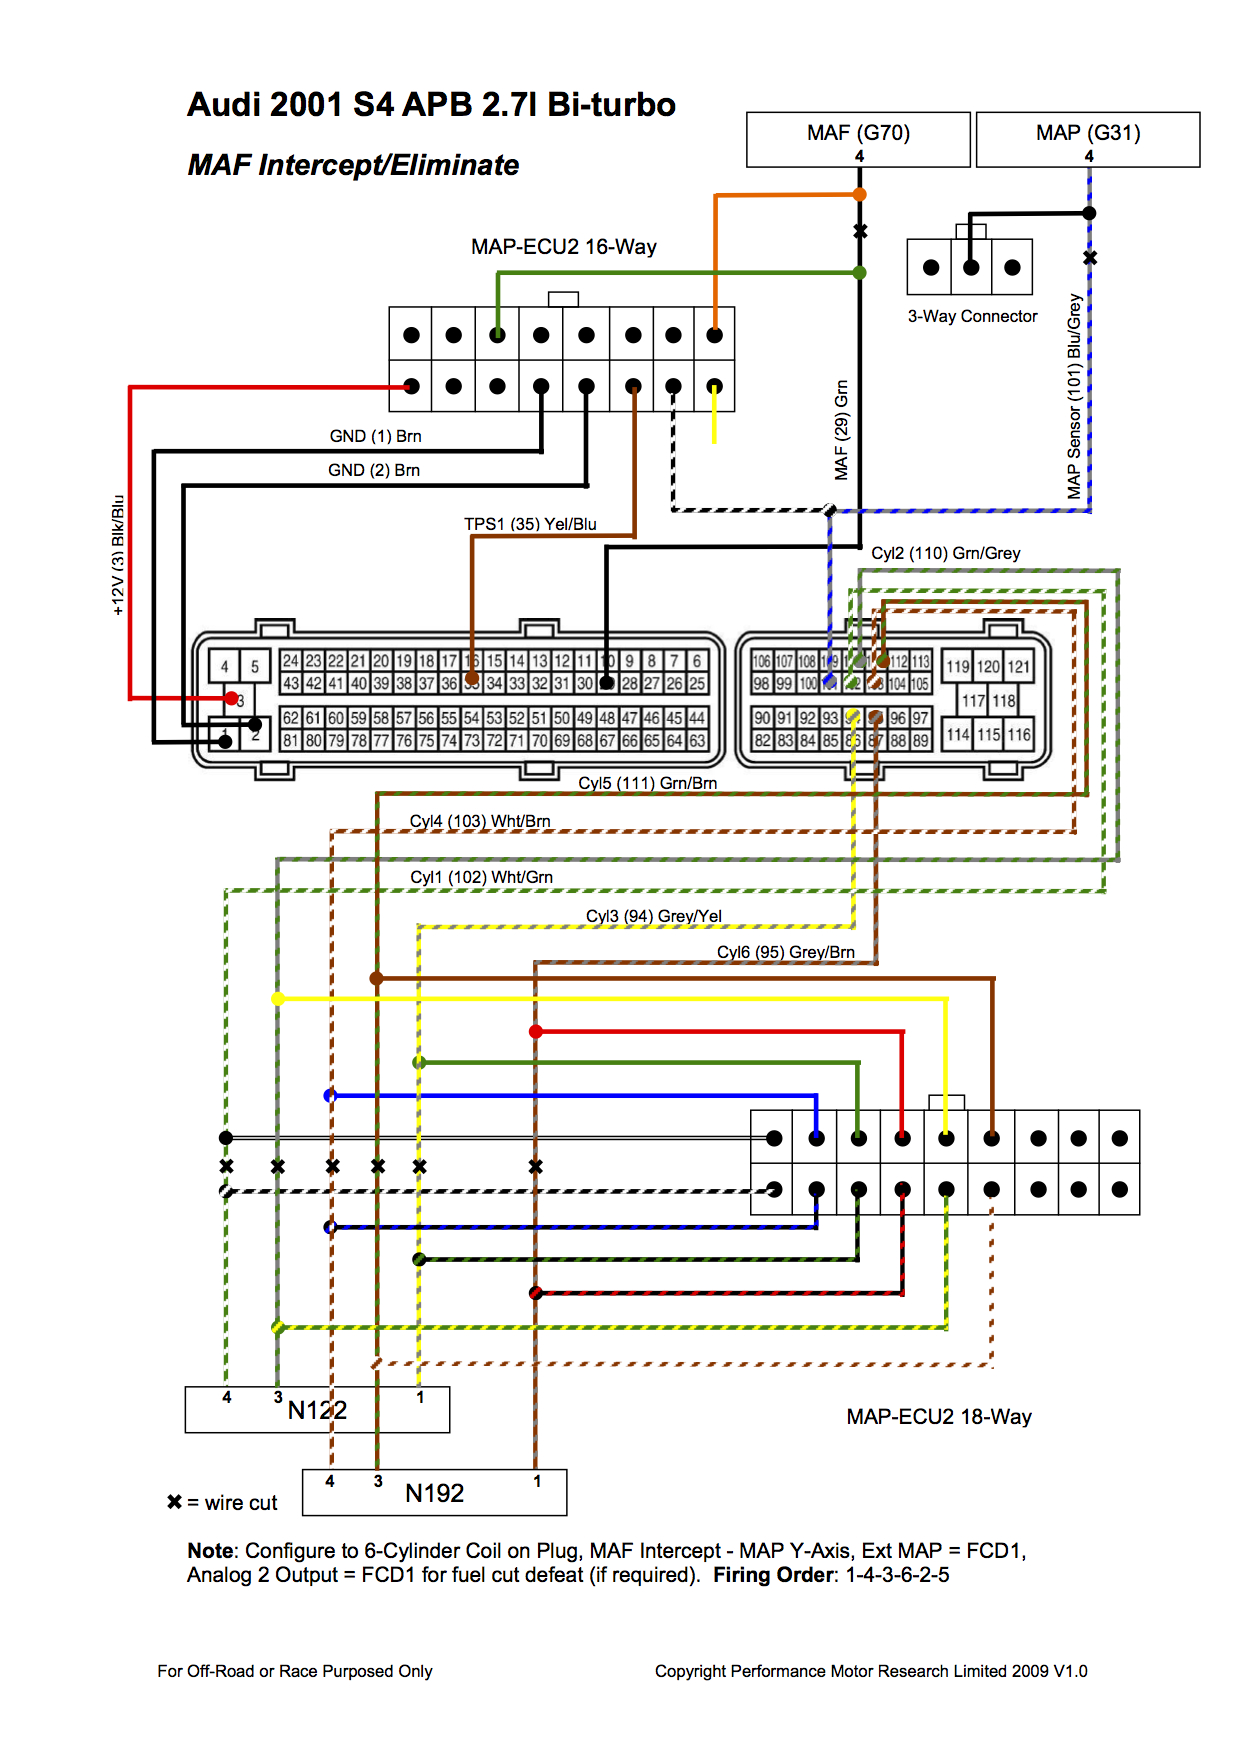 Audi S4 20011 ecu wiring diagram paccar ecu wiring diagram \u2022 wiring diagrams j 2006 nissan 350z radio wiring diagram at soozxer.org